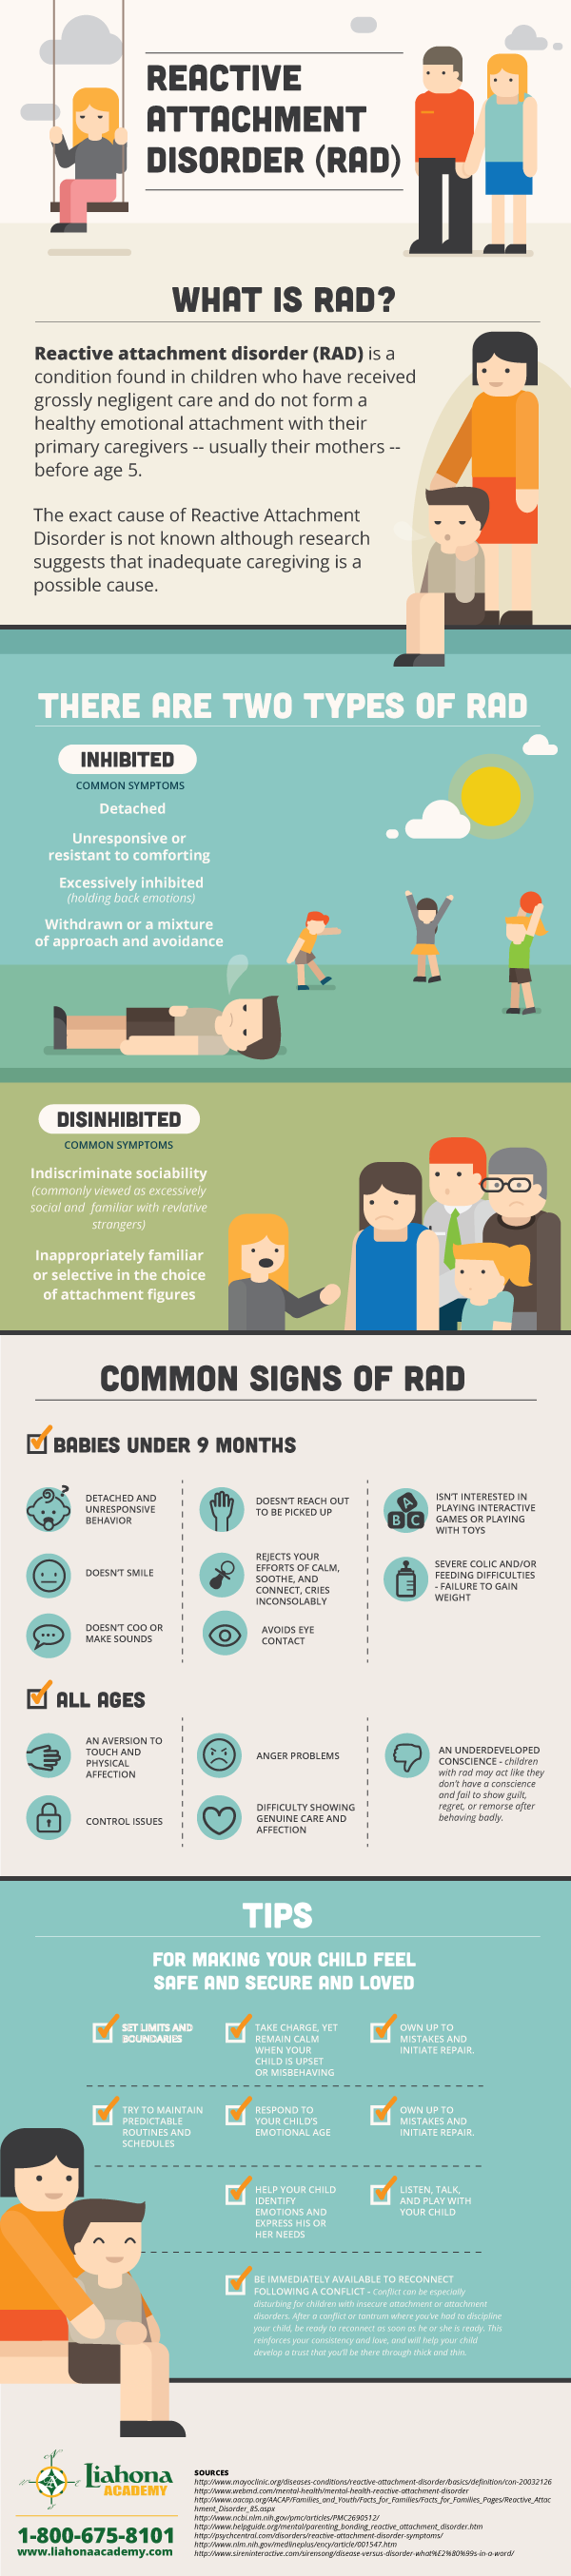 Reactive Attachment Disorder Infographic